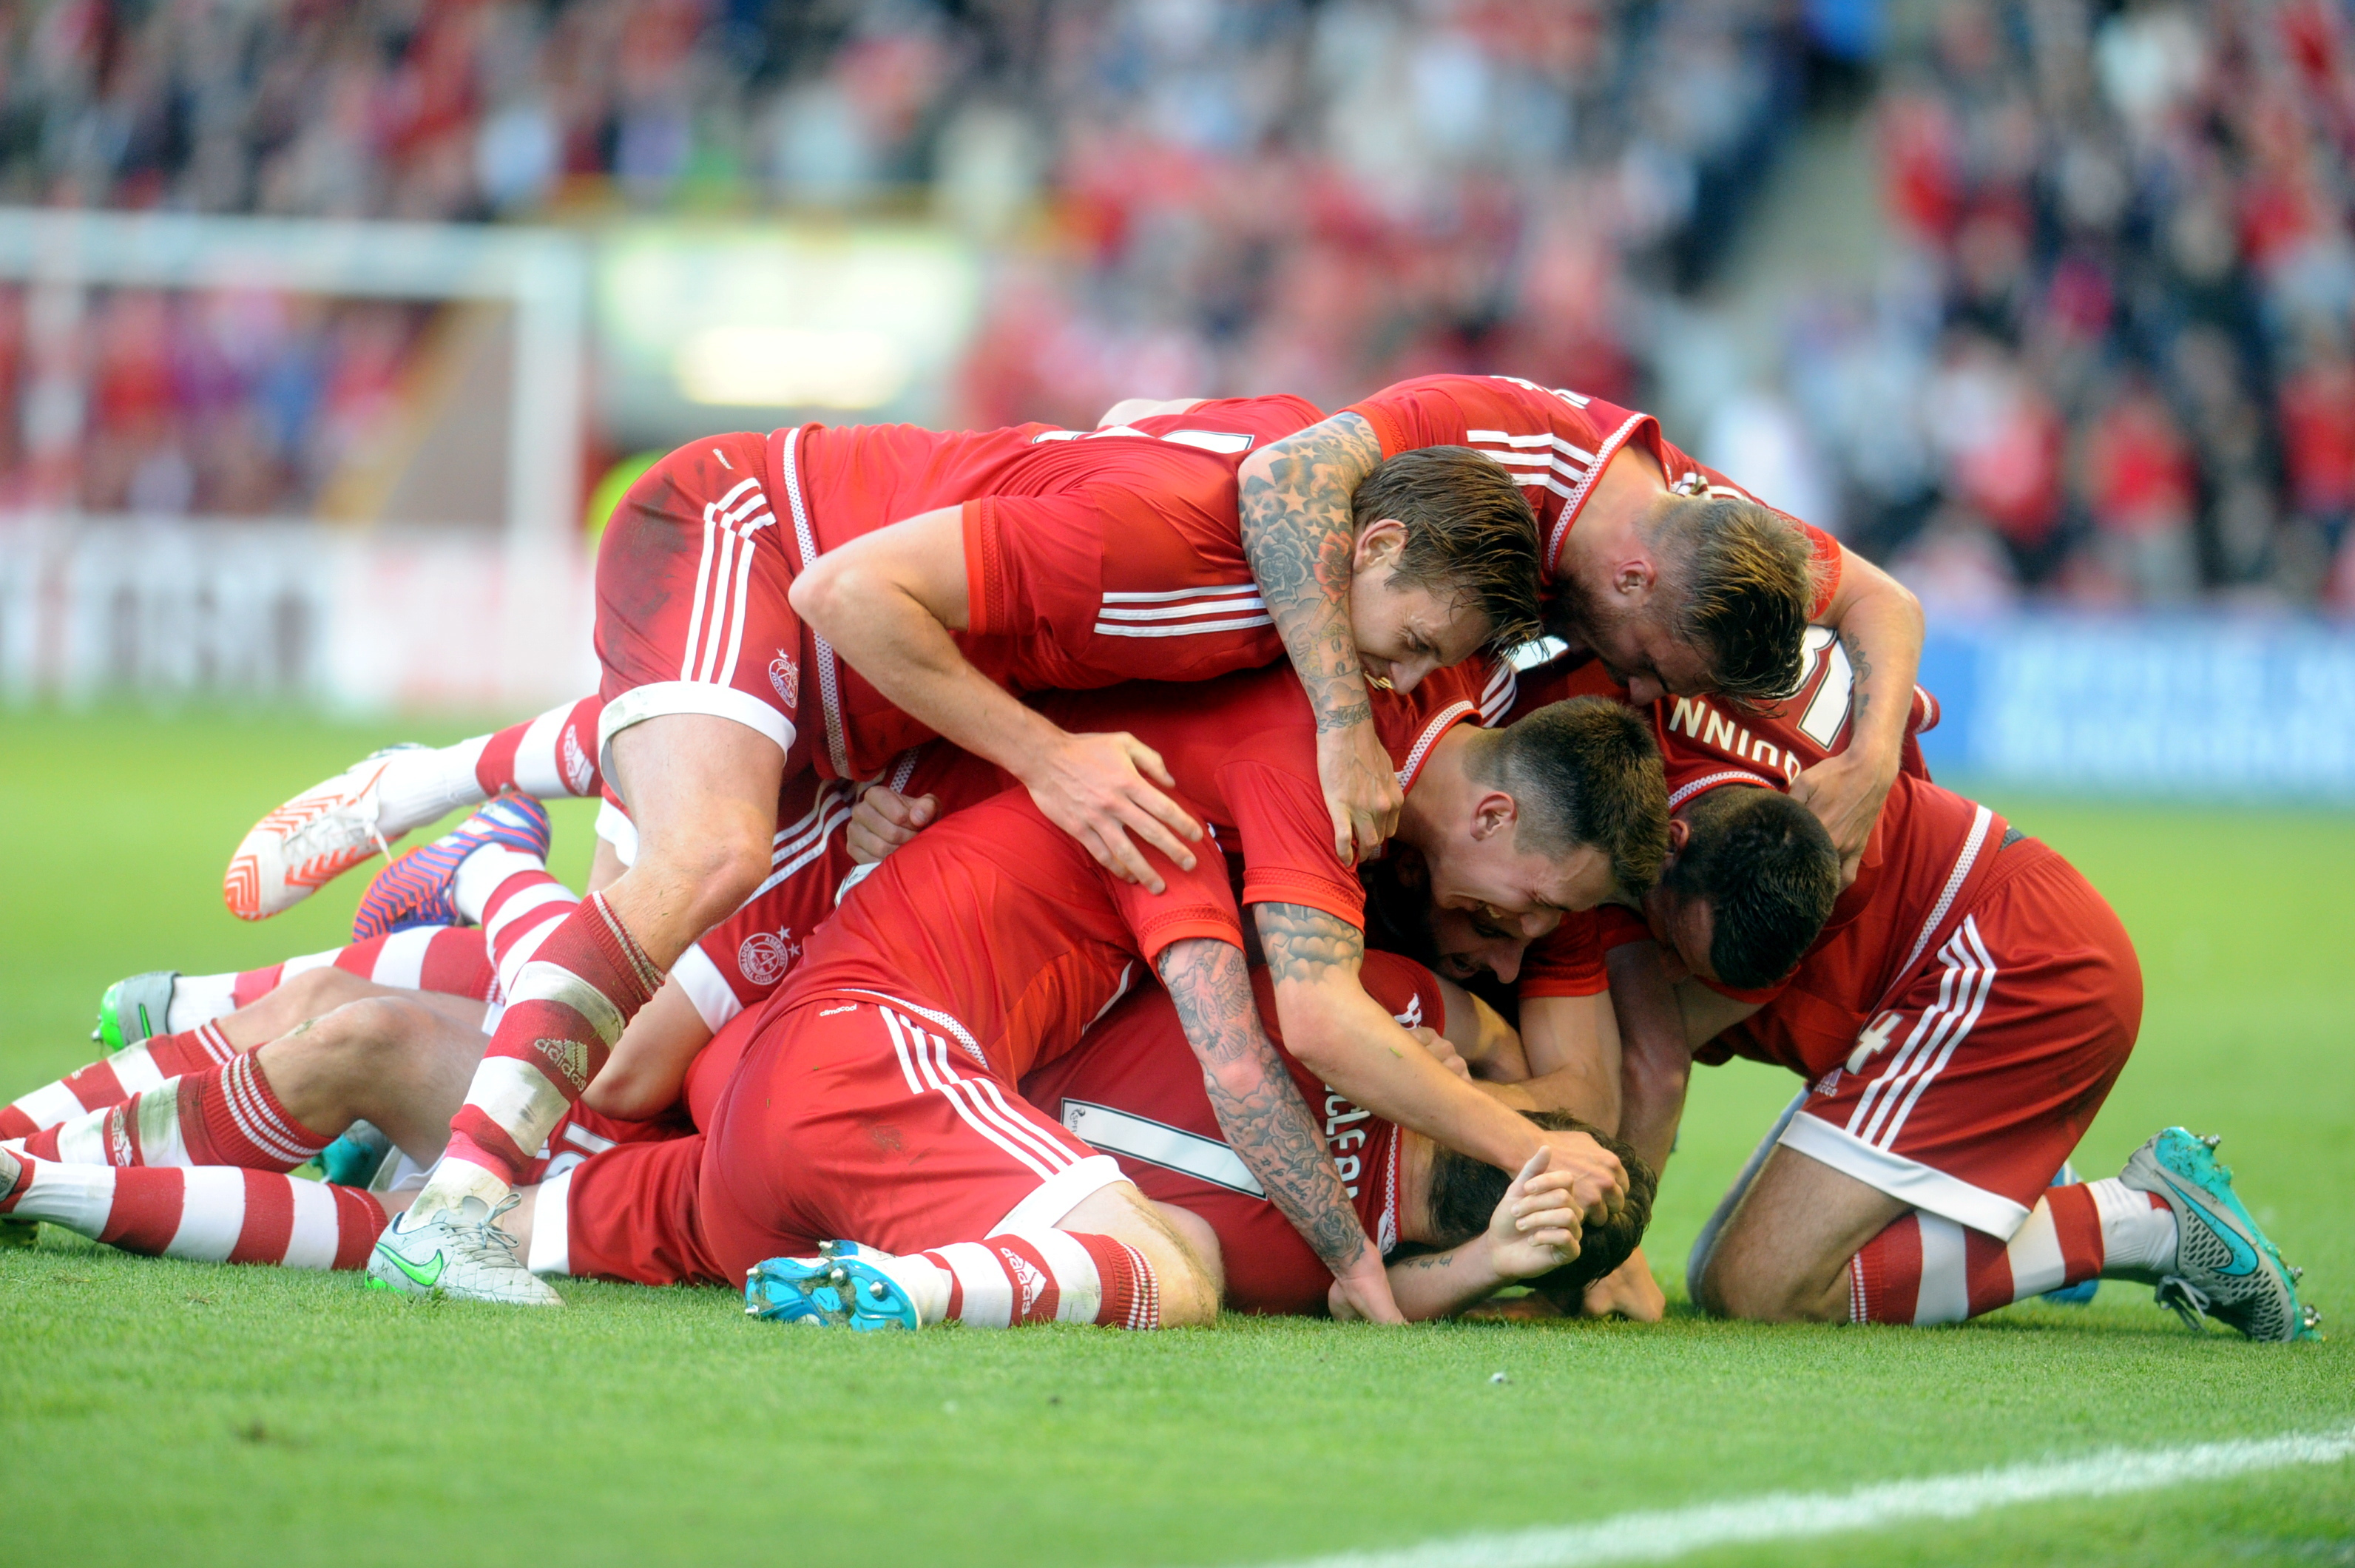 Niall McGuinn scores the Dons' opener and celebrates with team-mates